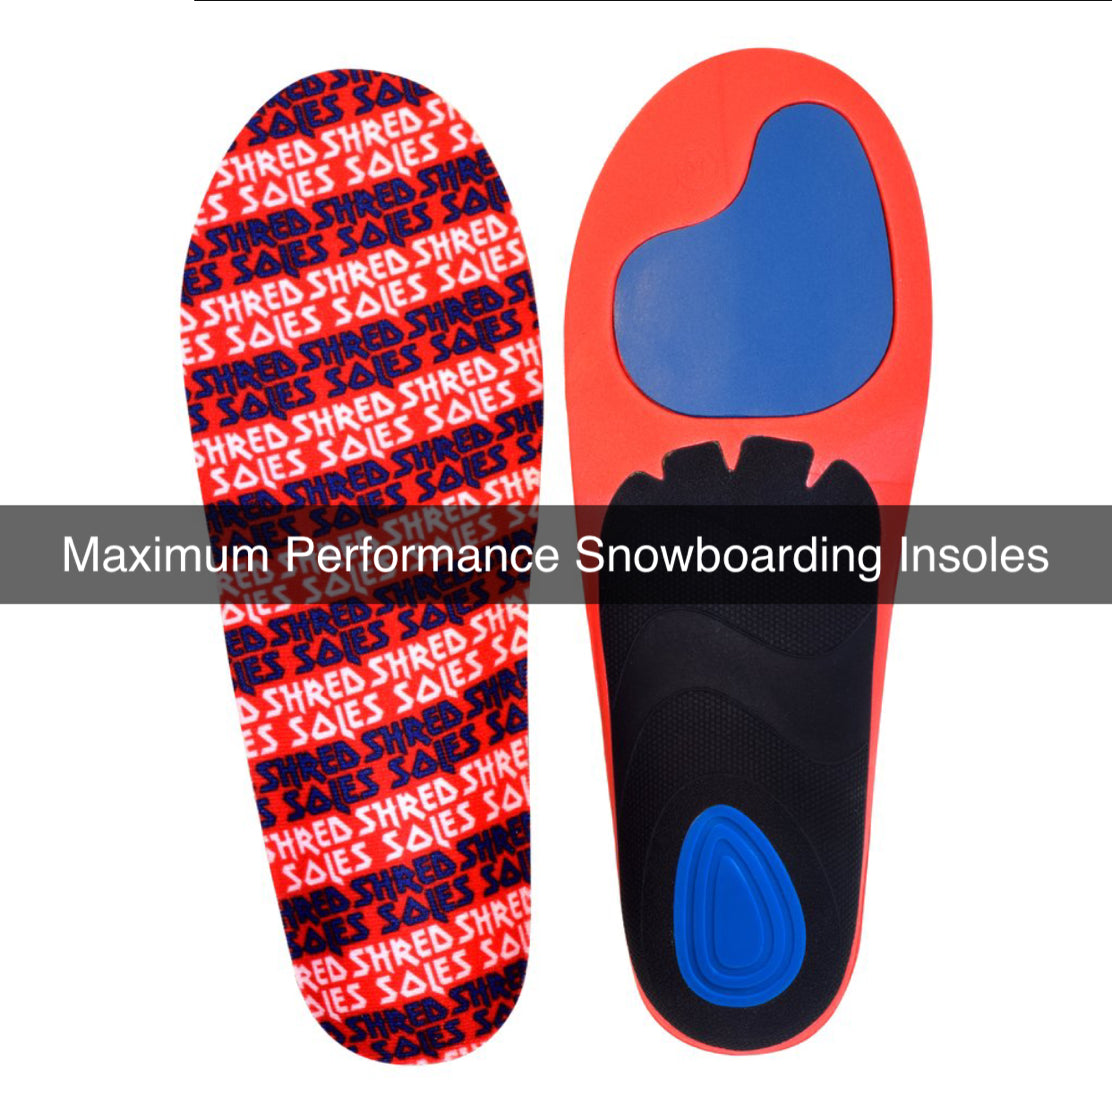 Get our Free 21 Page Fitting Guide titled The Snowboard Boot Fitting Bible